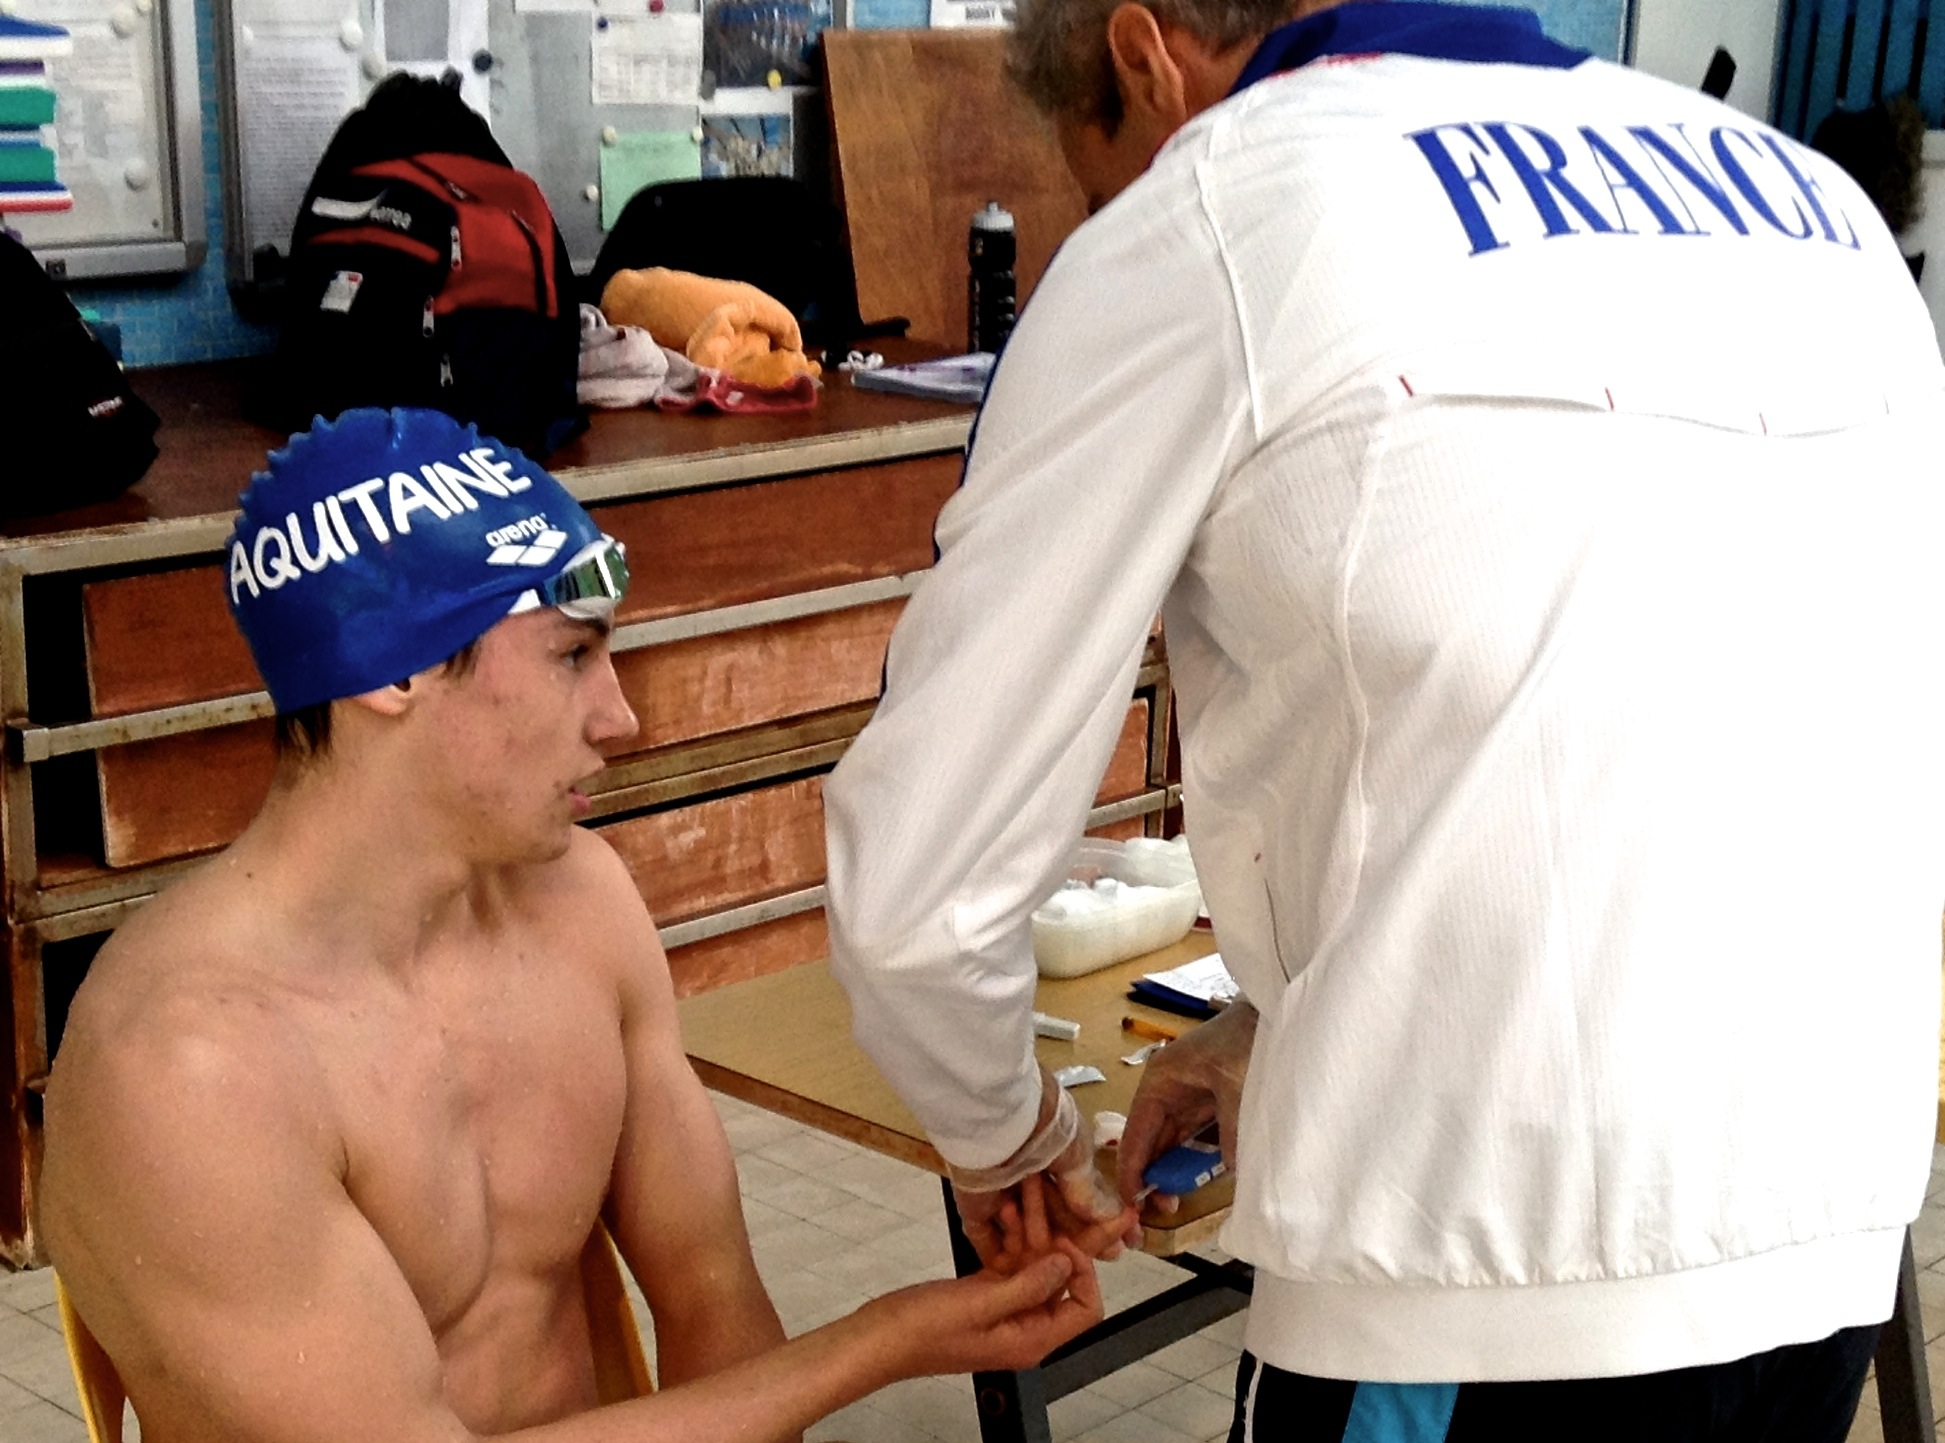 Fig 1: A French national team member gets his lactate sample taken after an exhaustive exercise to determine glycolytic energy contribution using INSCYD.